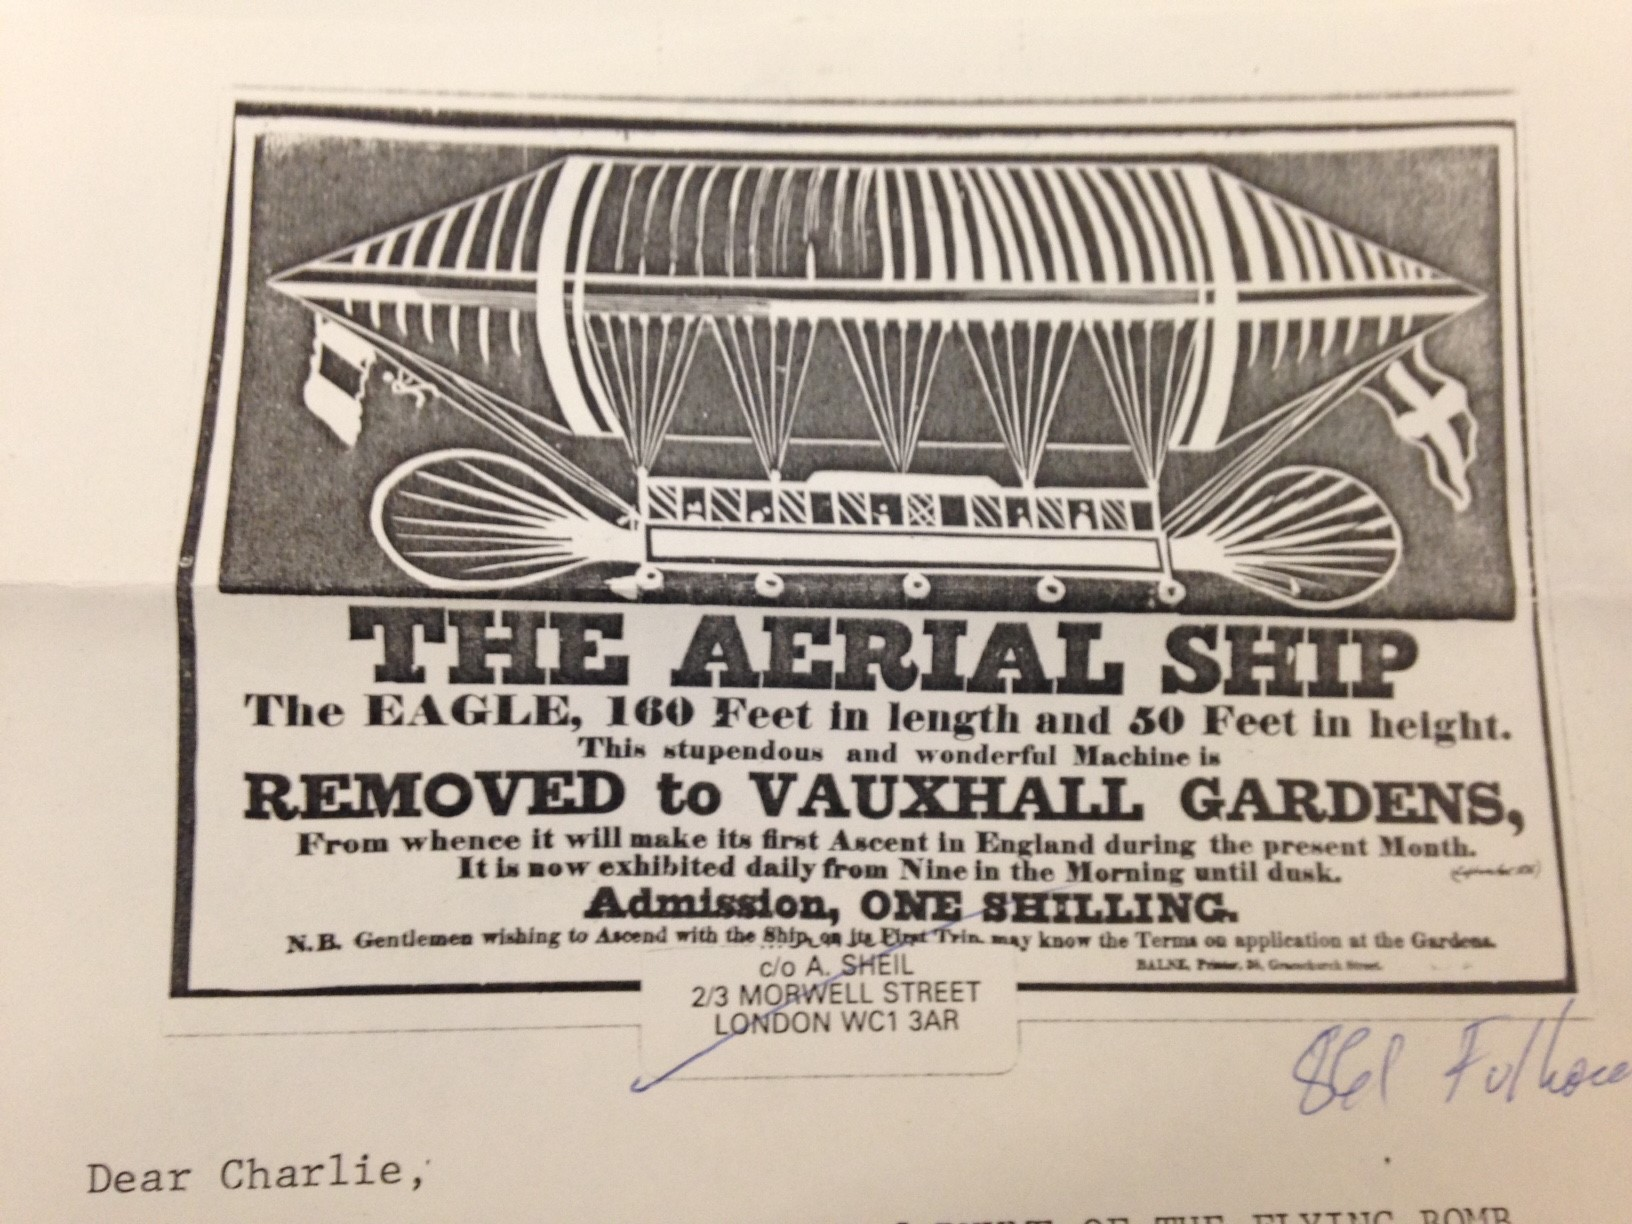 Advertisement for an aerial ship on stationary.